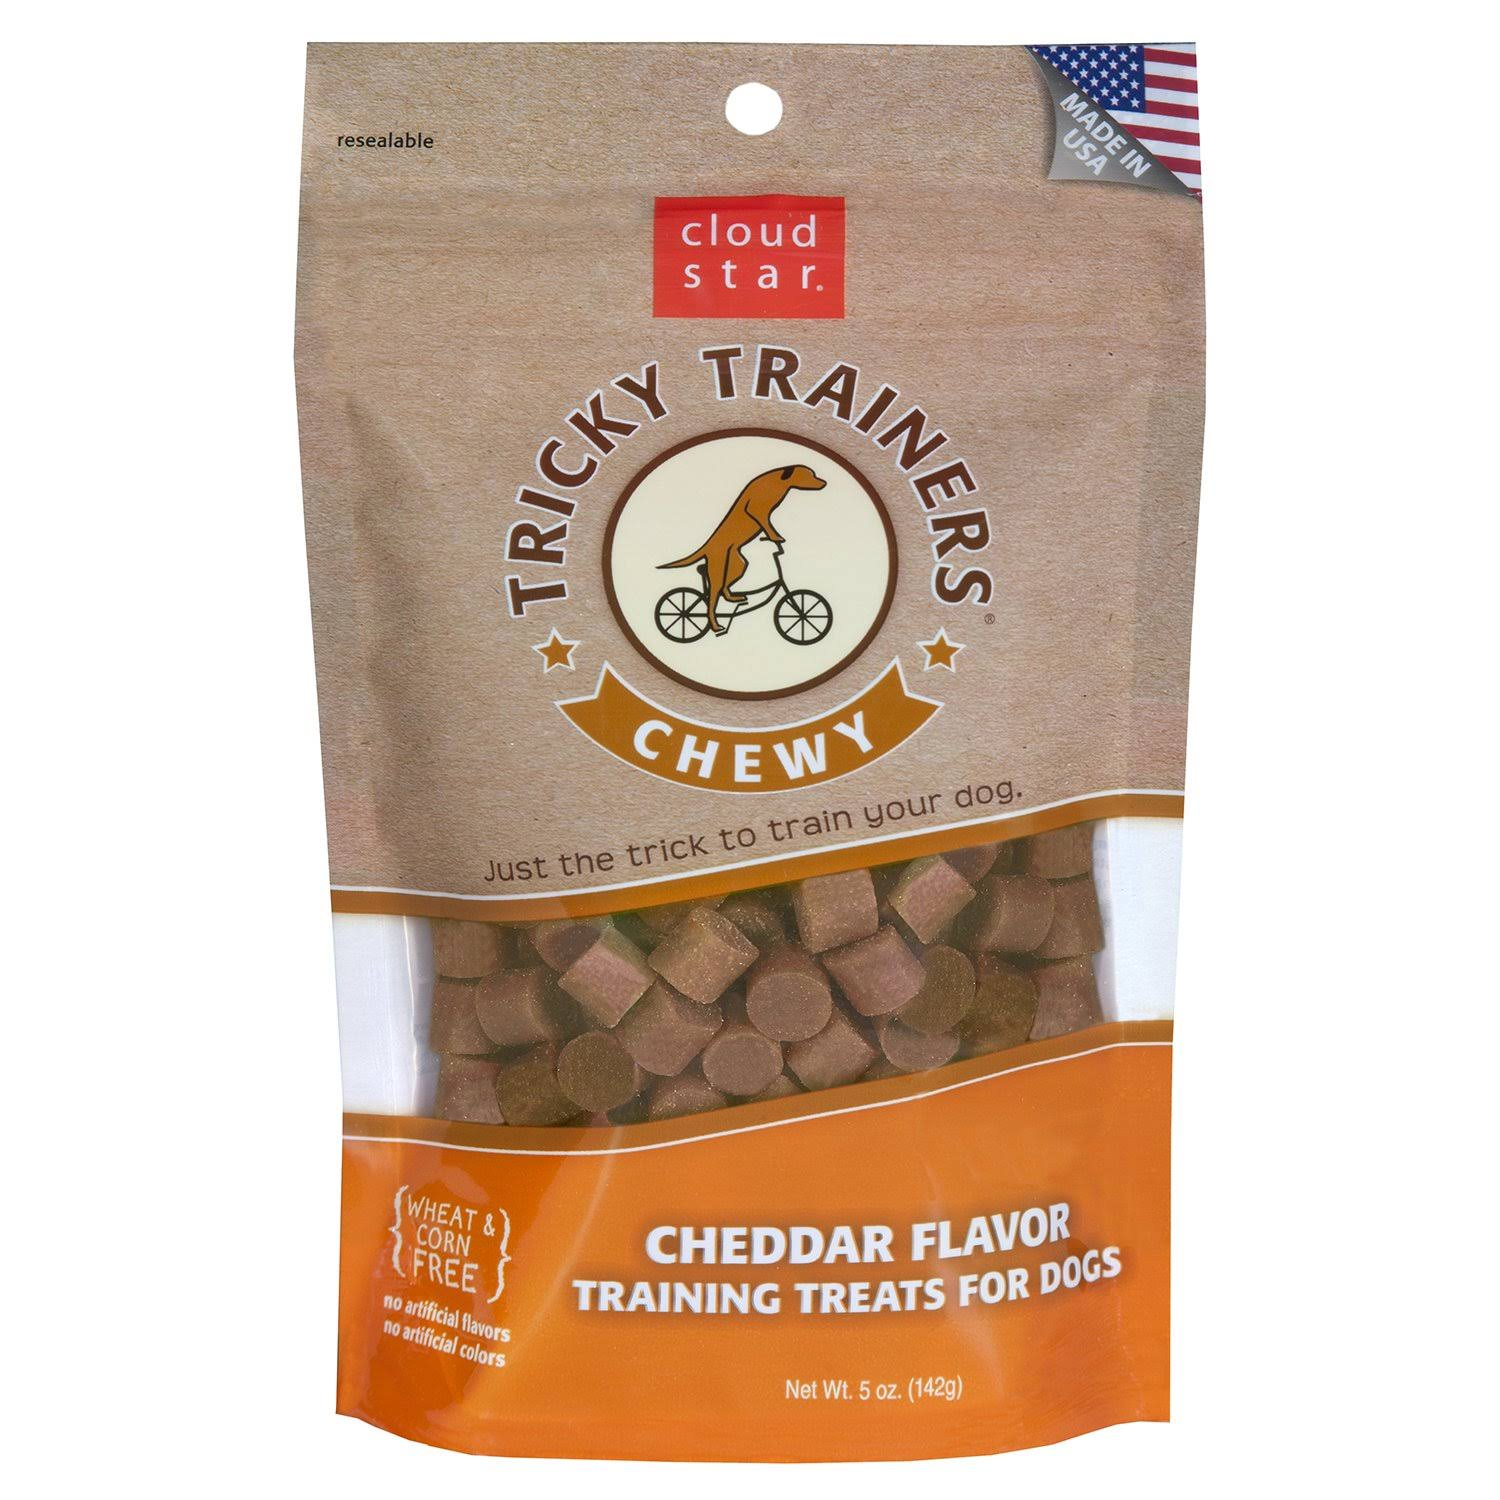 Cloud Star Tricky Trainers Chewy Dog Treats - Cheddar, 14oz